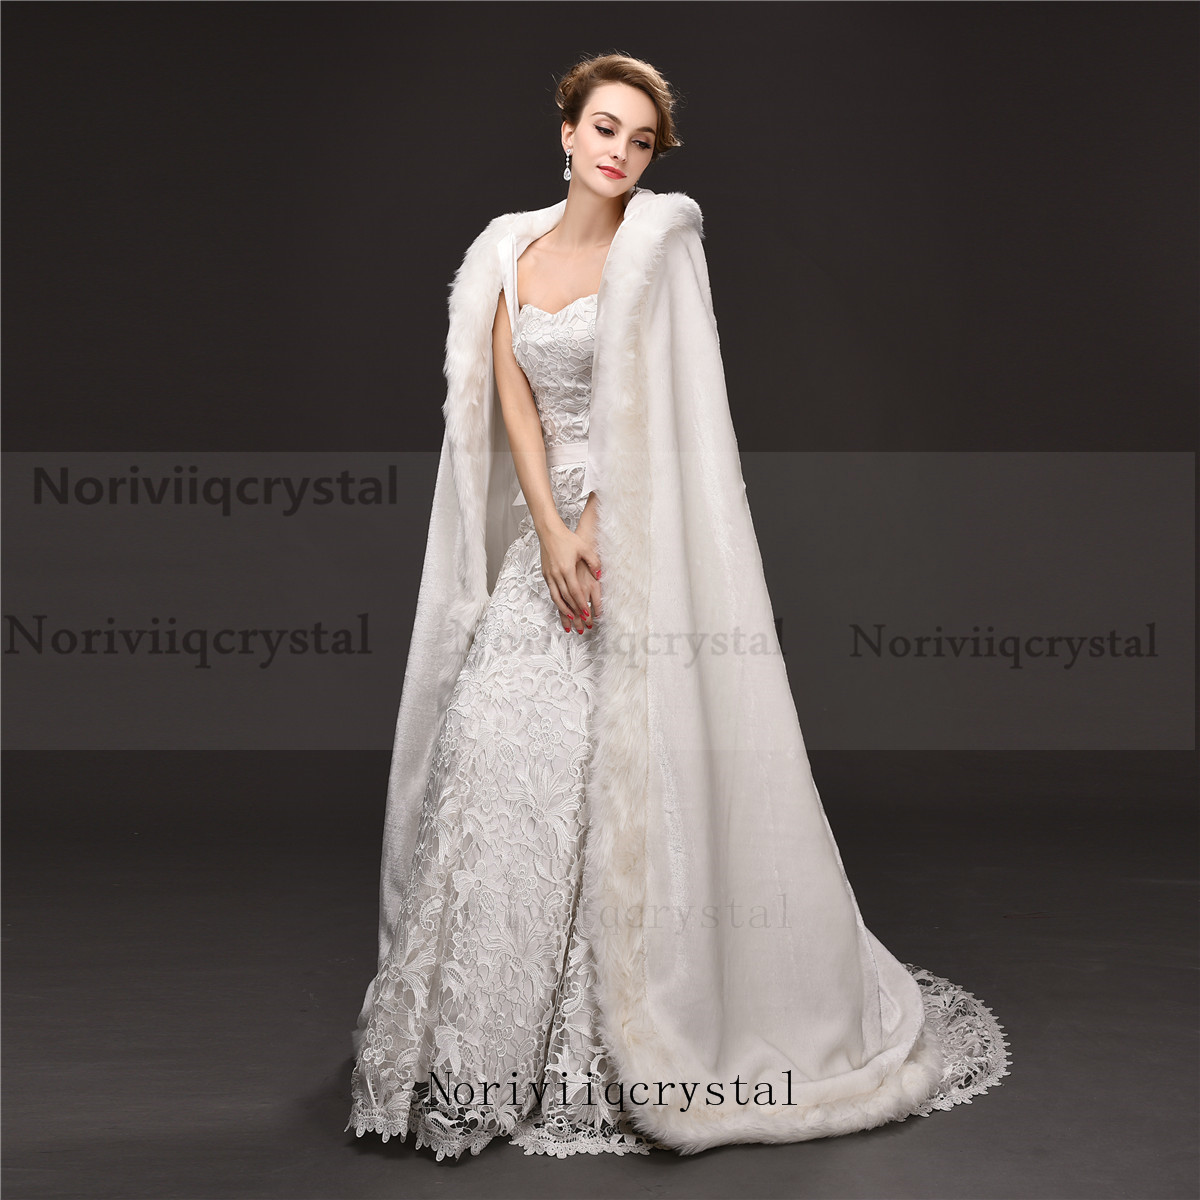 Elegant White Faux Fur Long Wedding Cape Warm Women Jacket